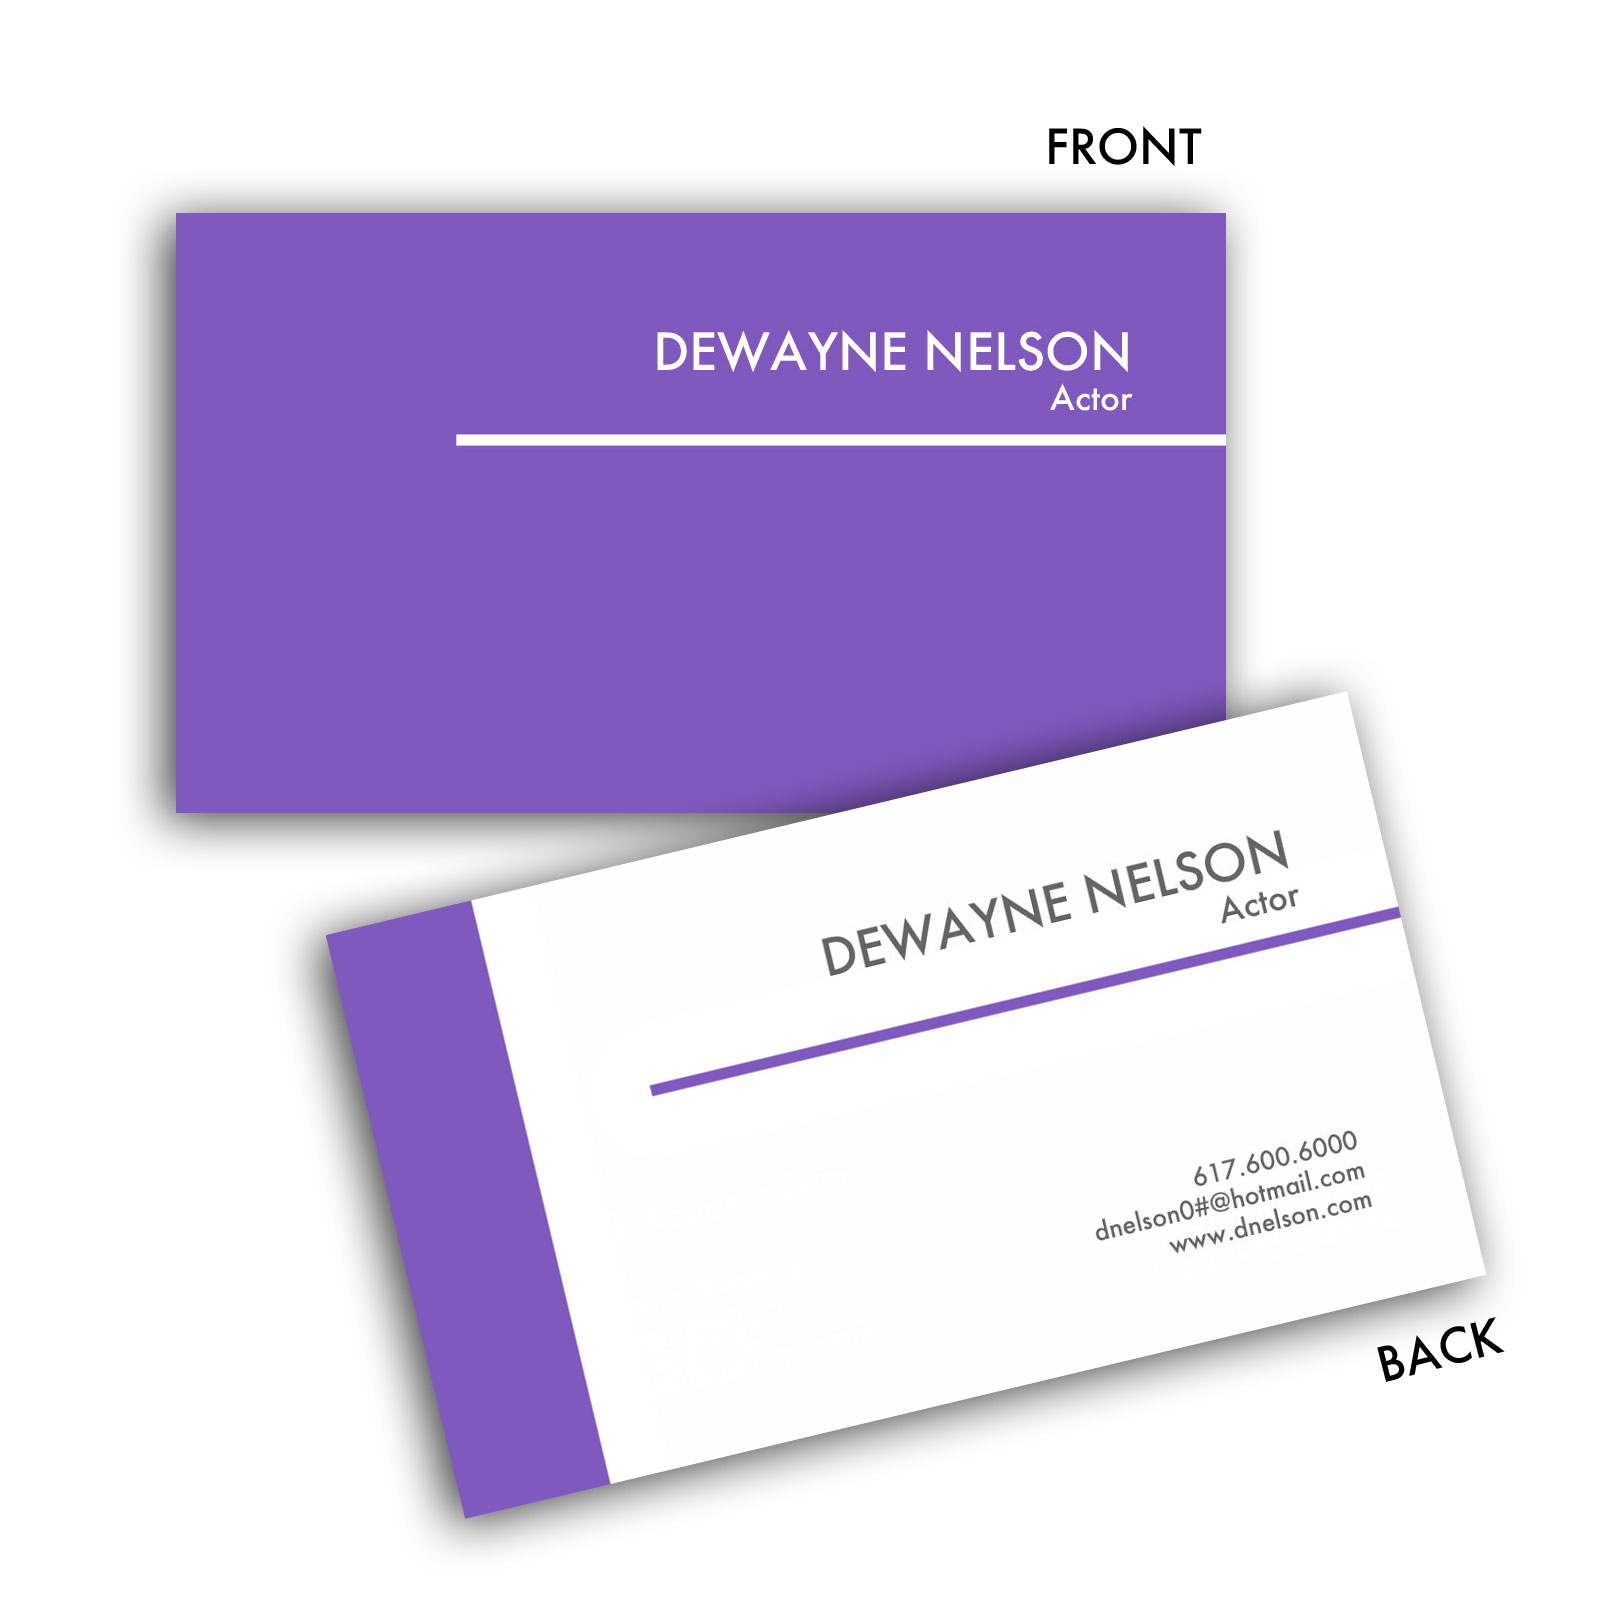 colour edge standard business card - Standard Business Card